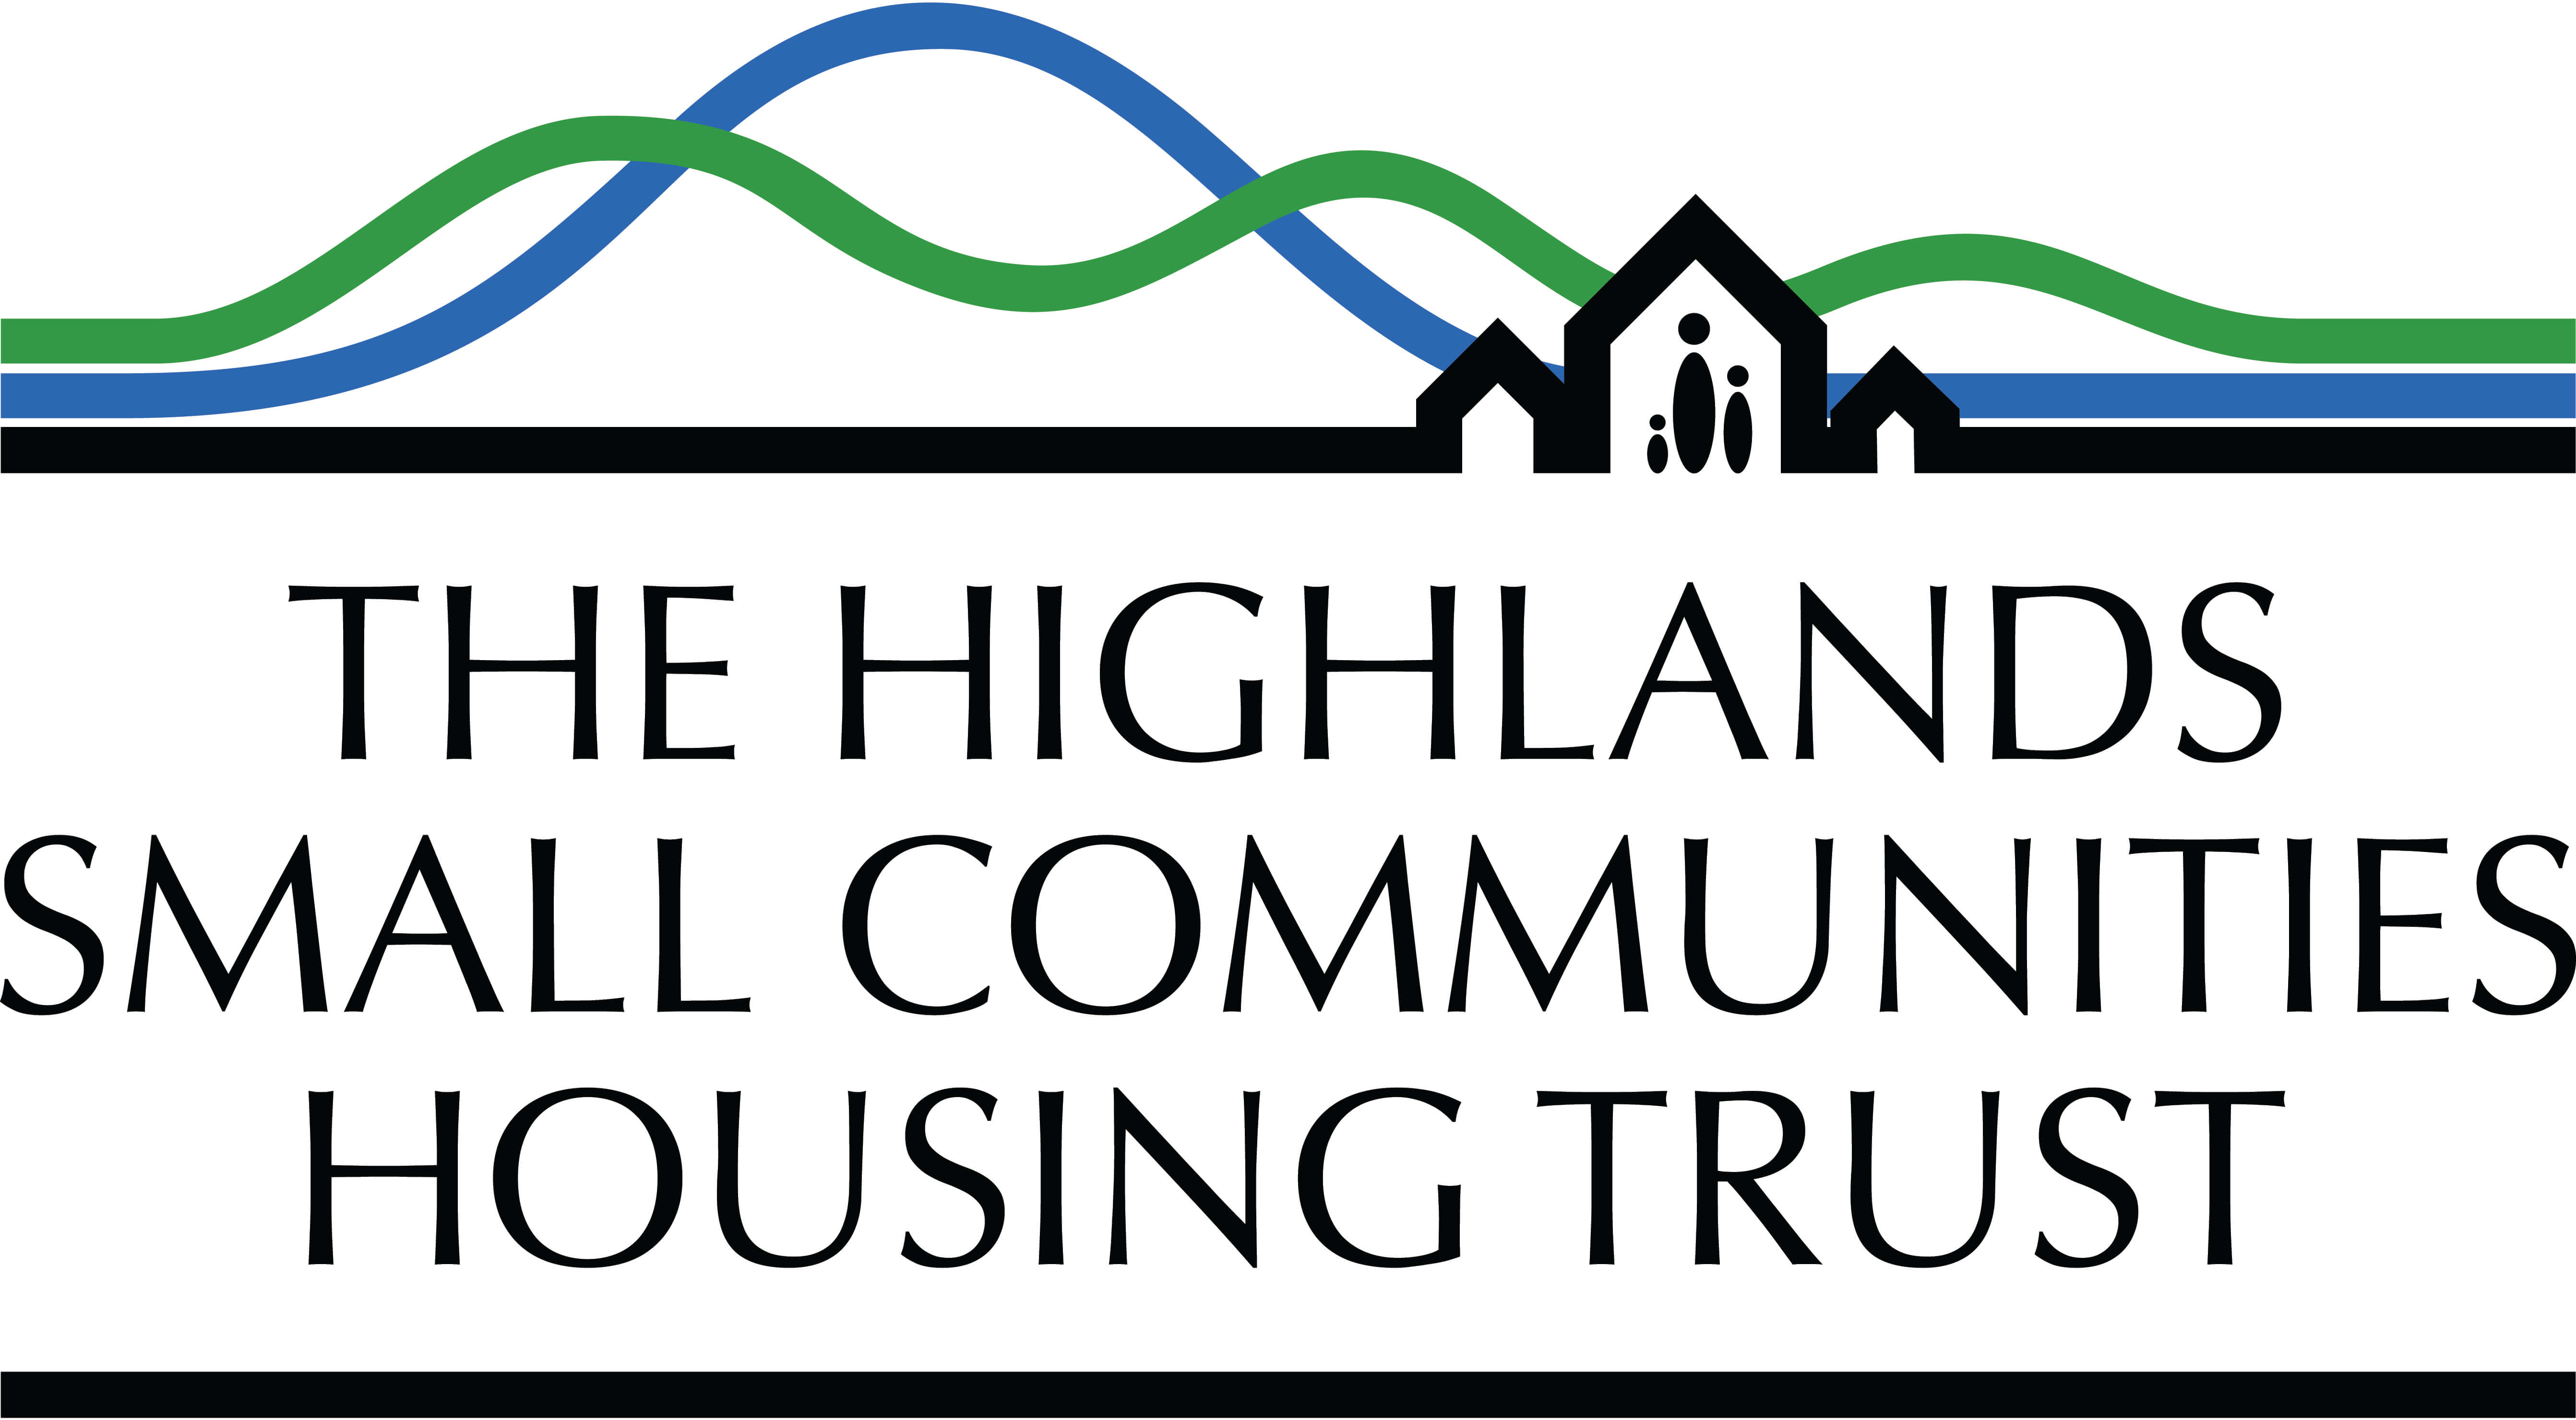 Link to the Highlands Small Communities Housing Trust